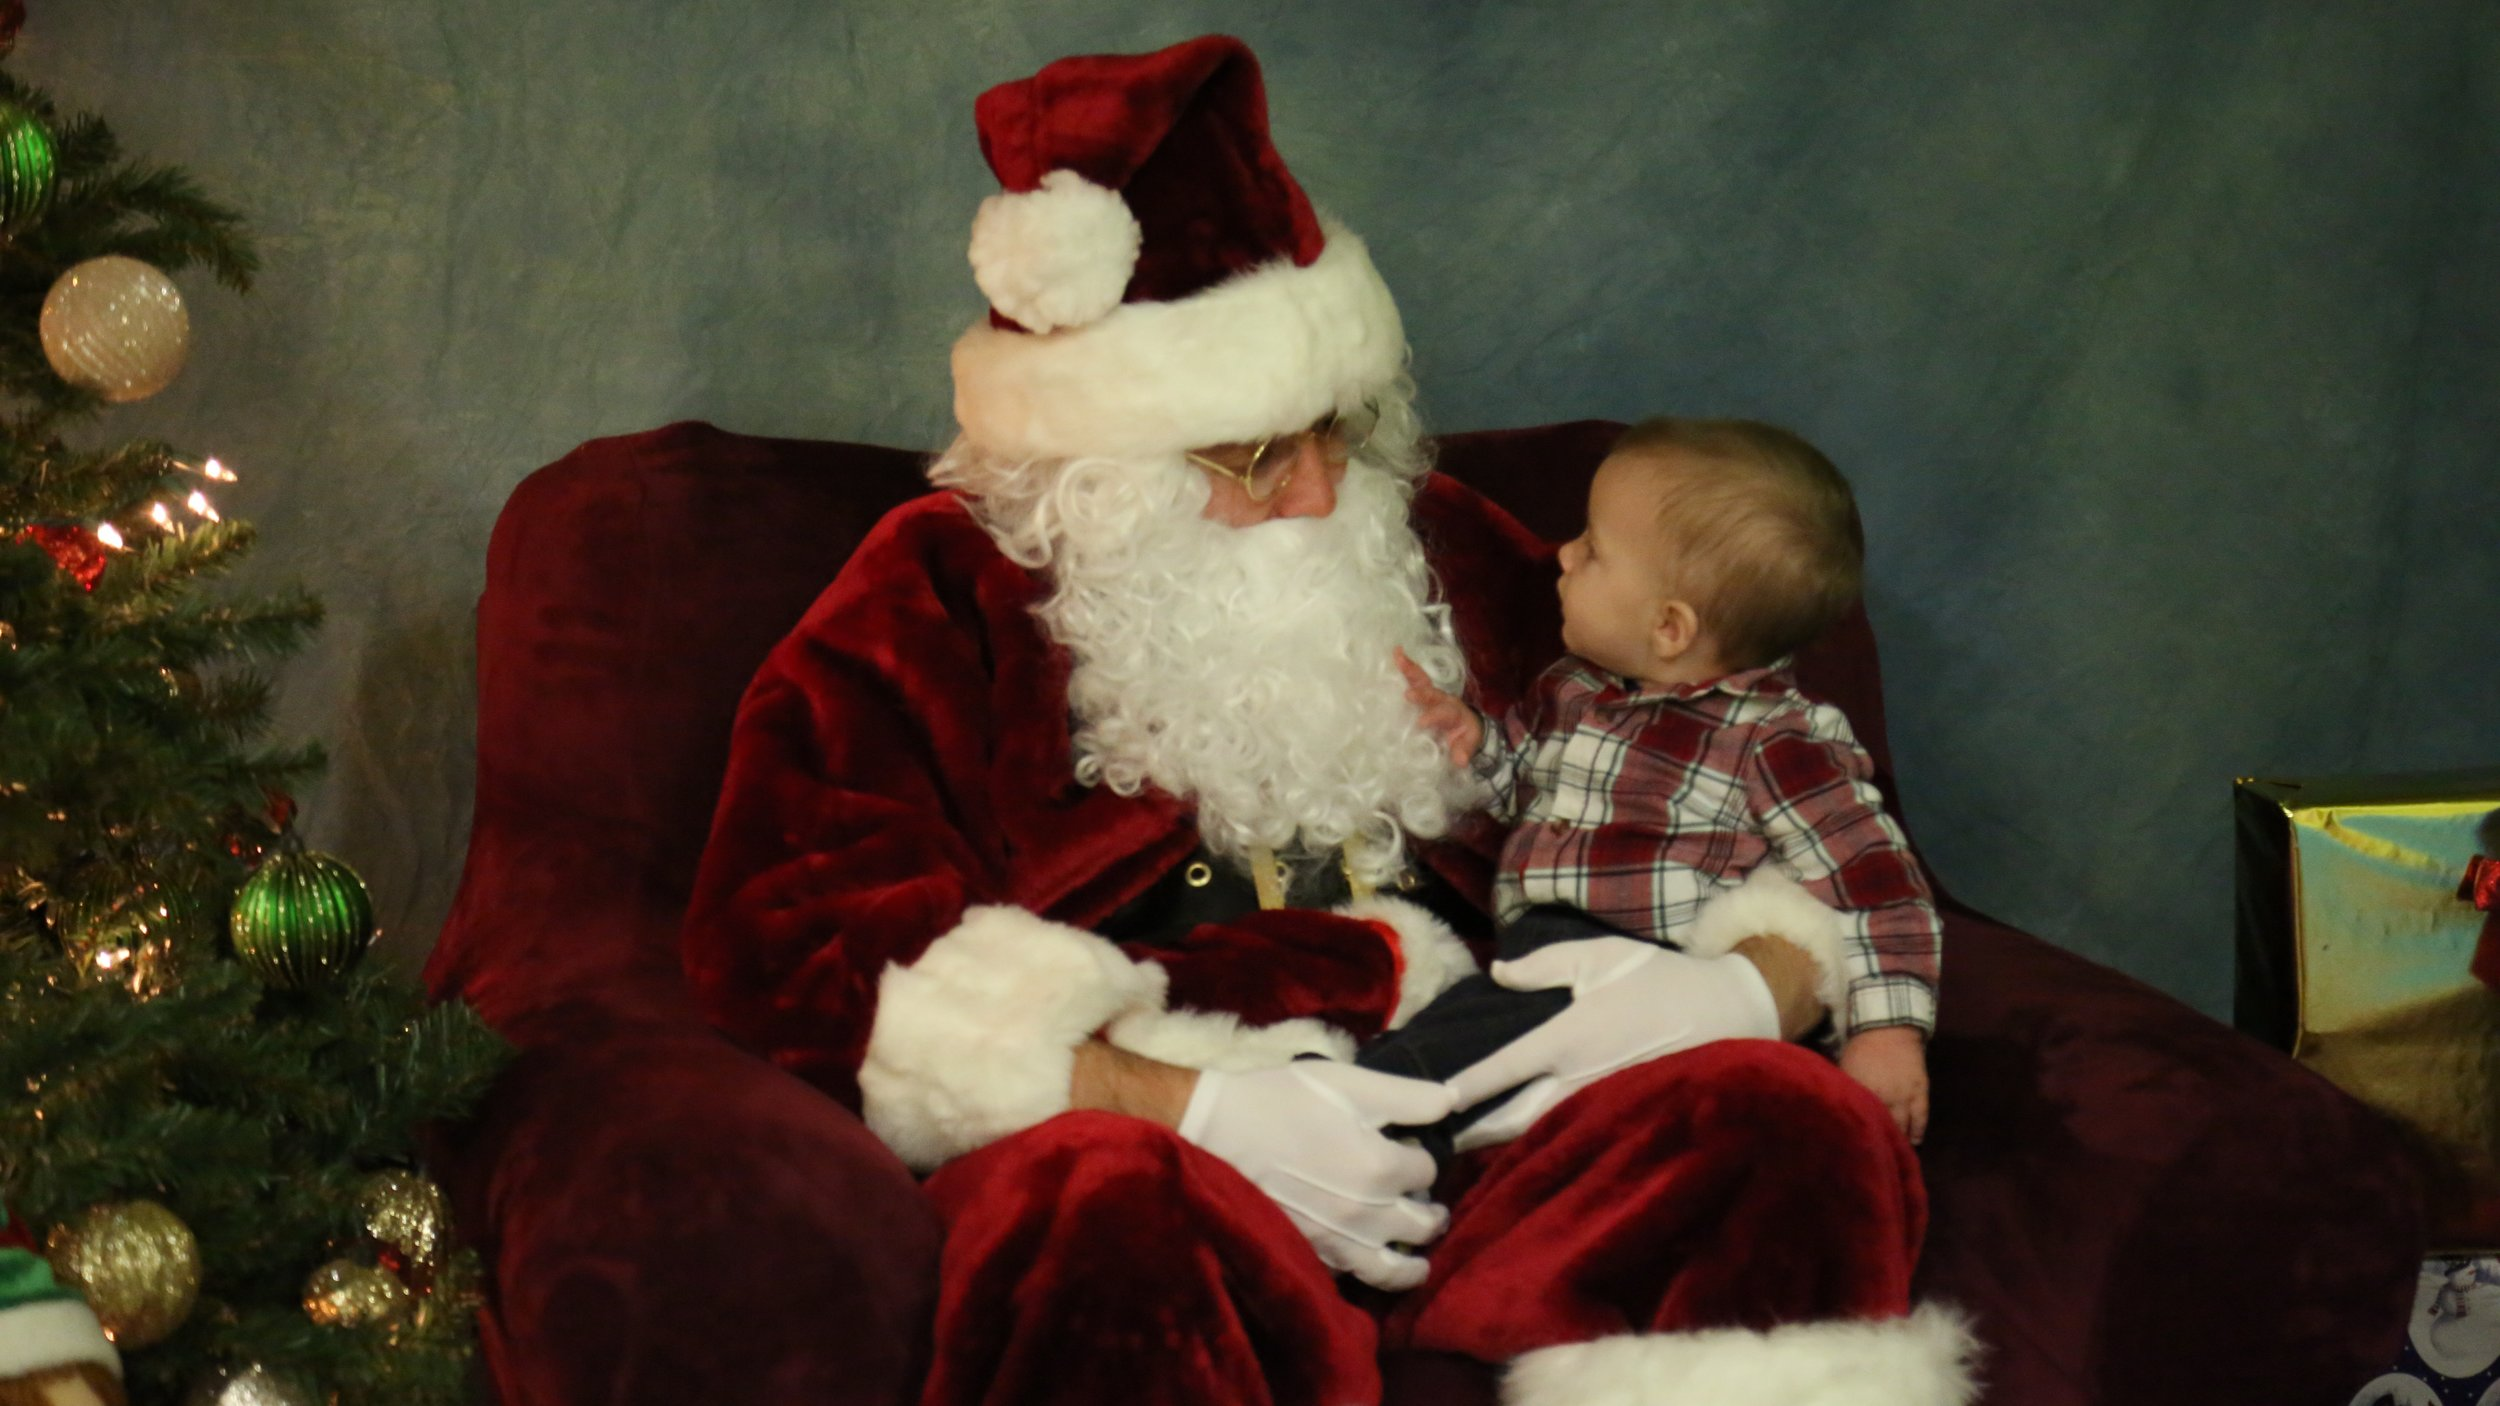 Personal visit with Santa makes a great photo op, so bring your camera and snap some shots!